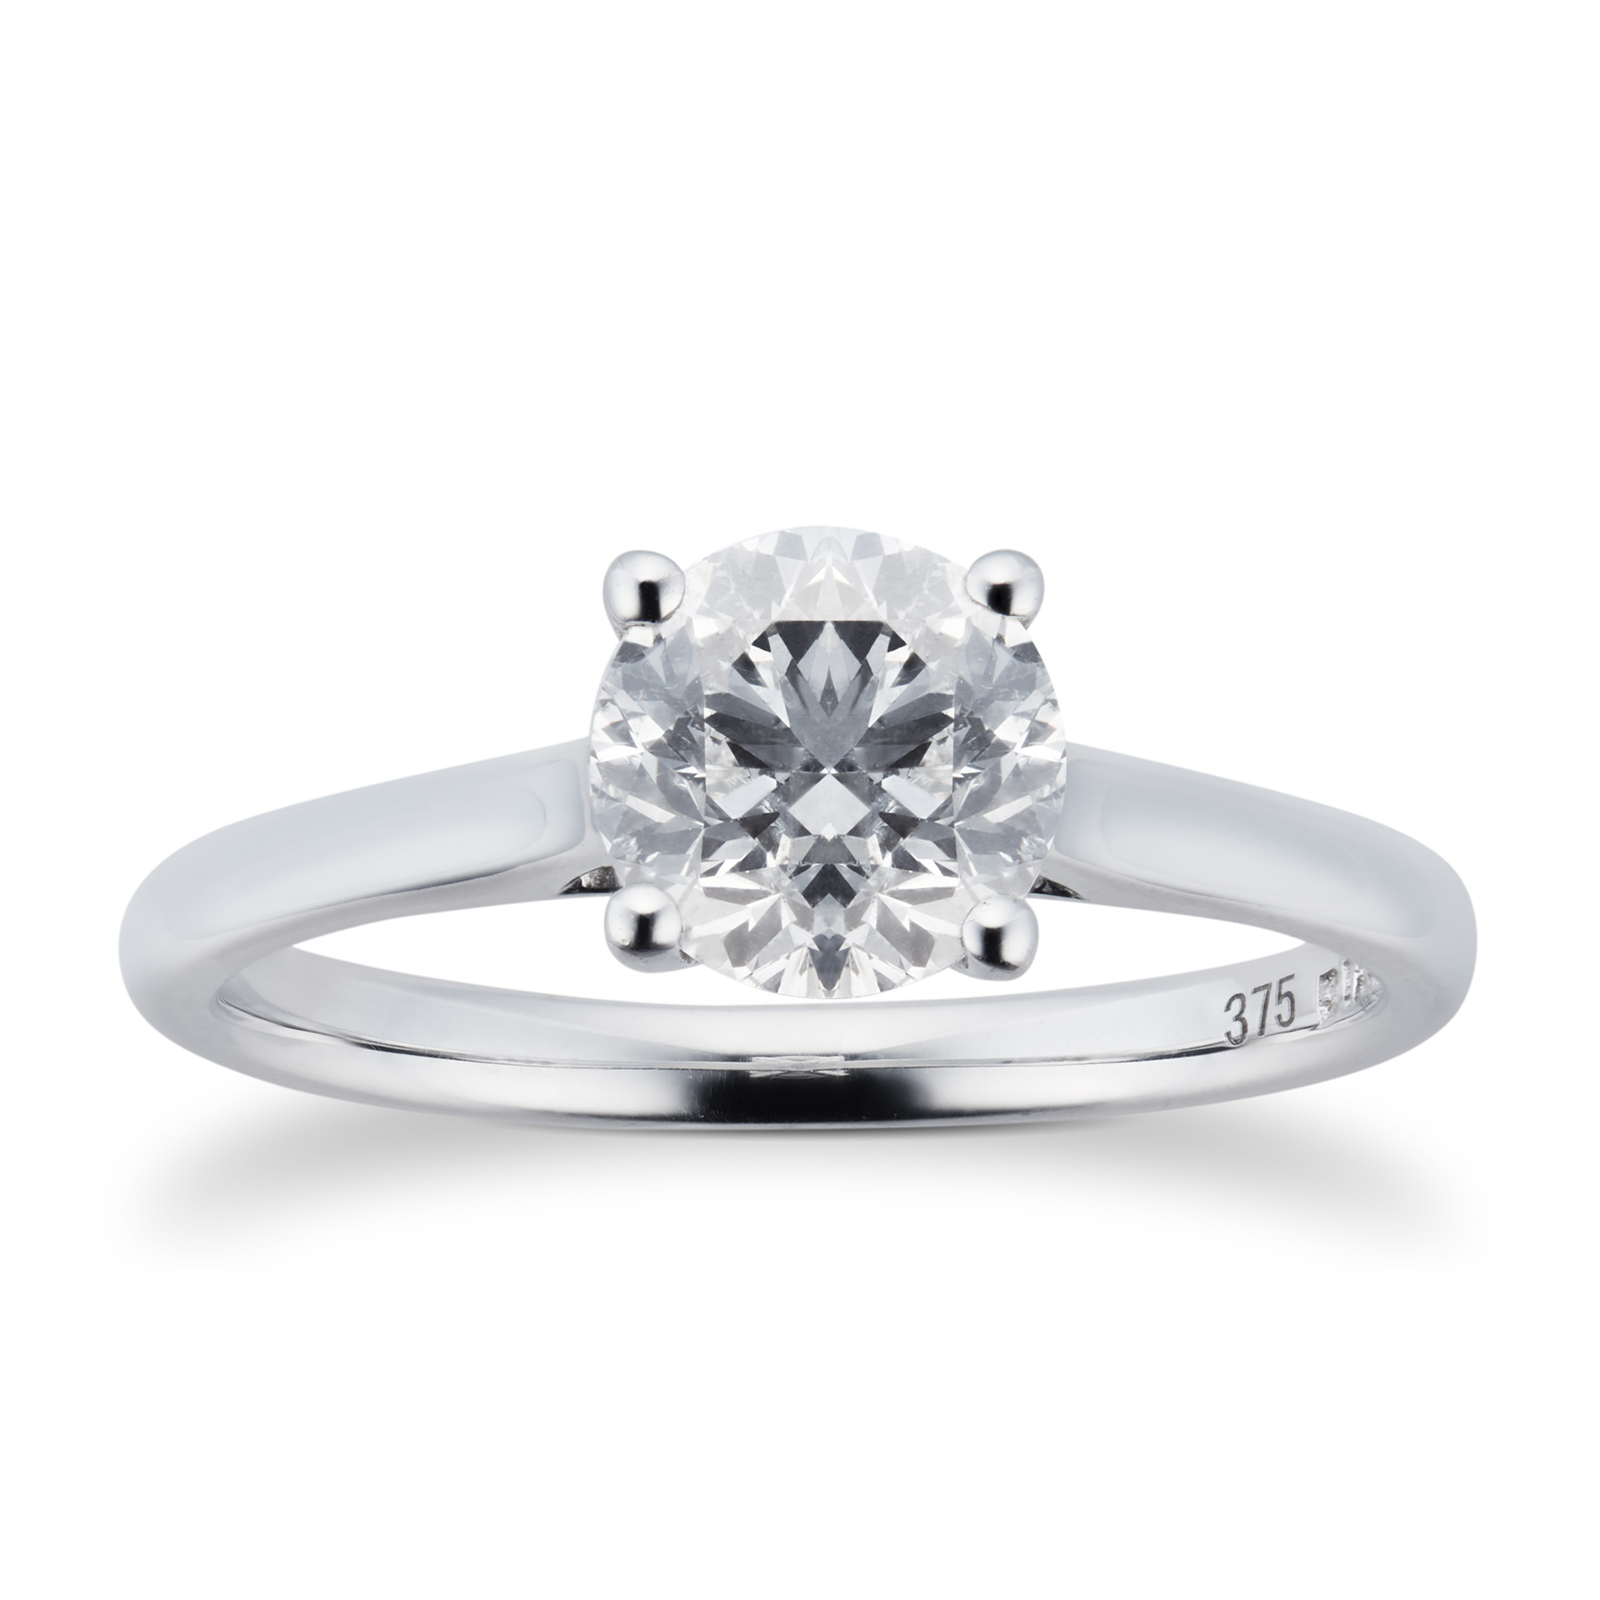 Brilliant Cut 1.00ct 4 Claw Diamond Solitaire Ring In 9ct ...